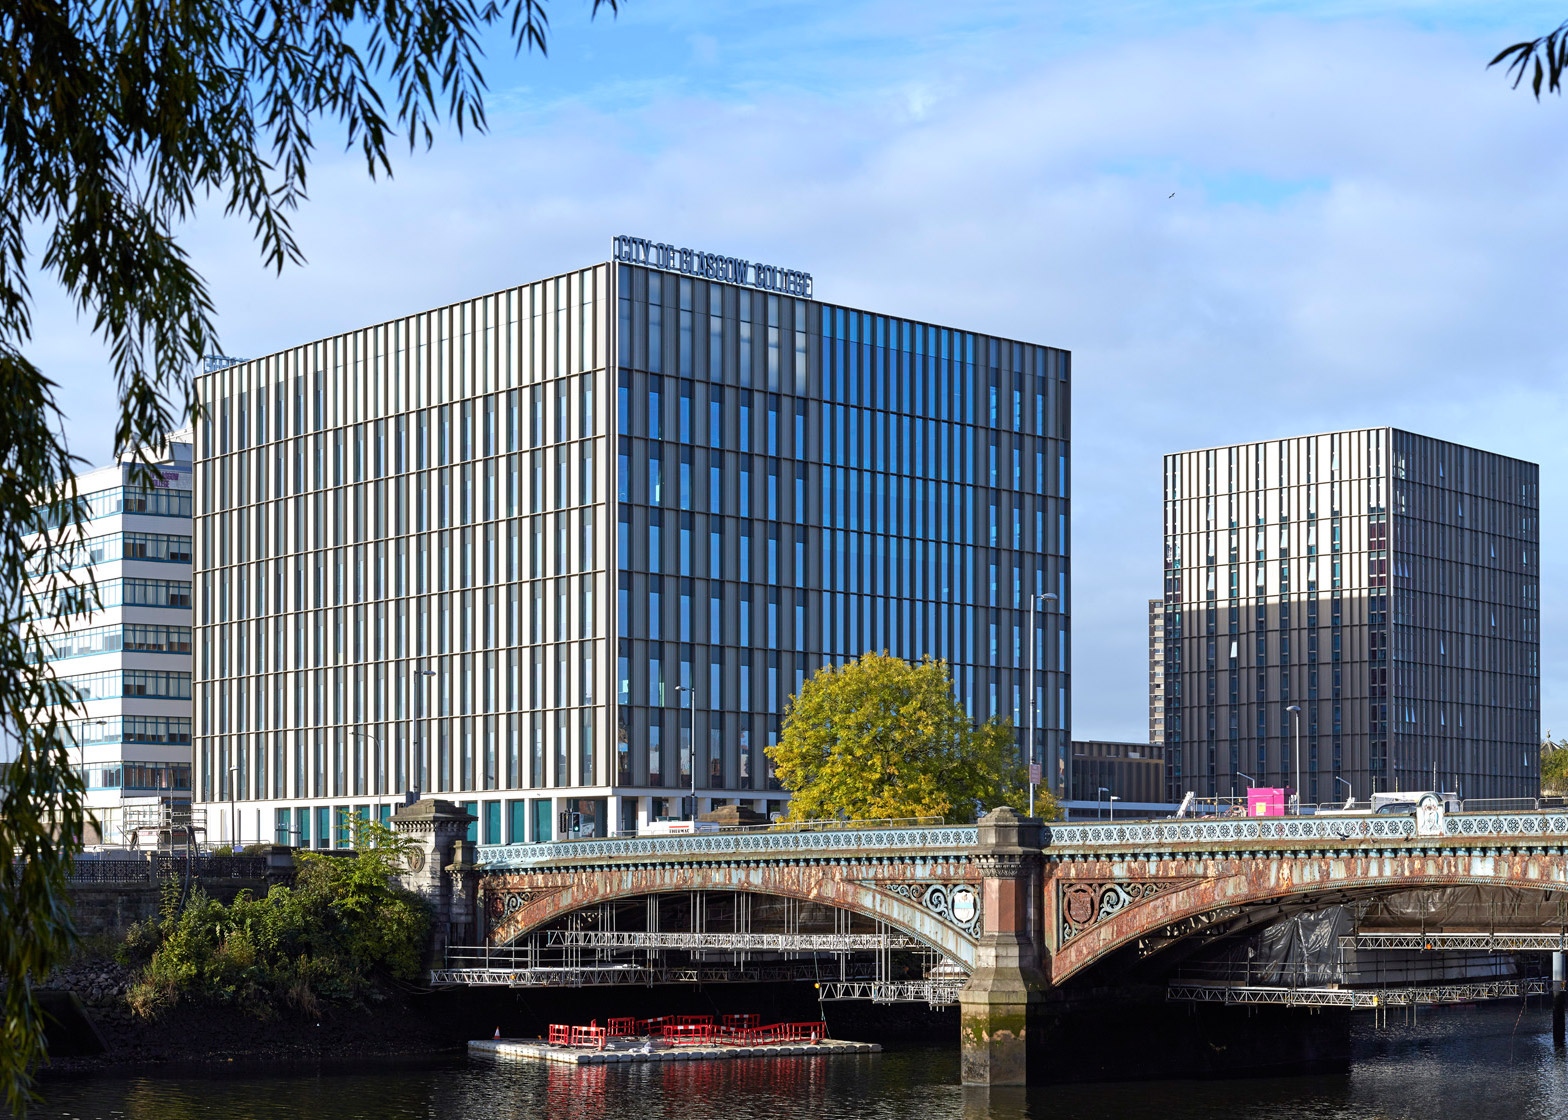 City of Glasgow College, Riverside Campus by Michael Laird Architects & Reiach and Hall Architects.Photograph by Keith Hunter